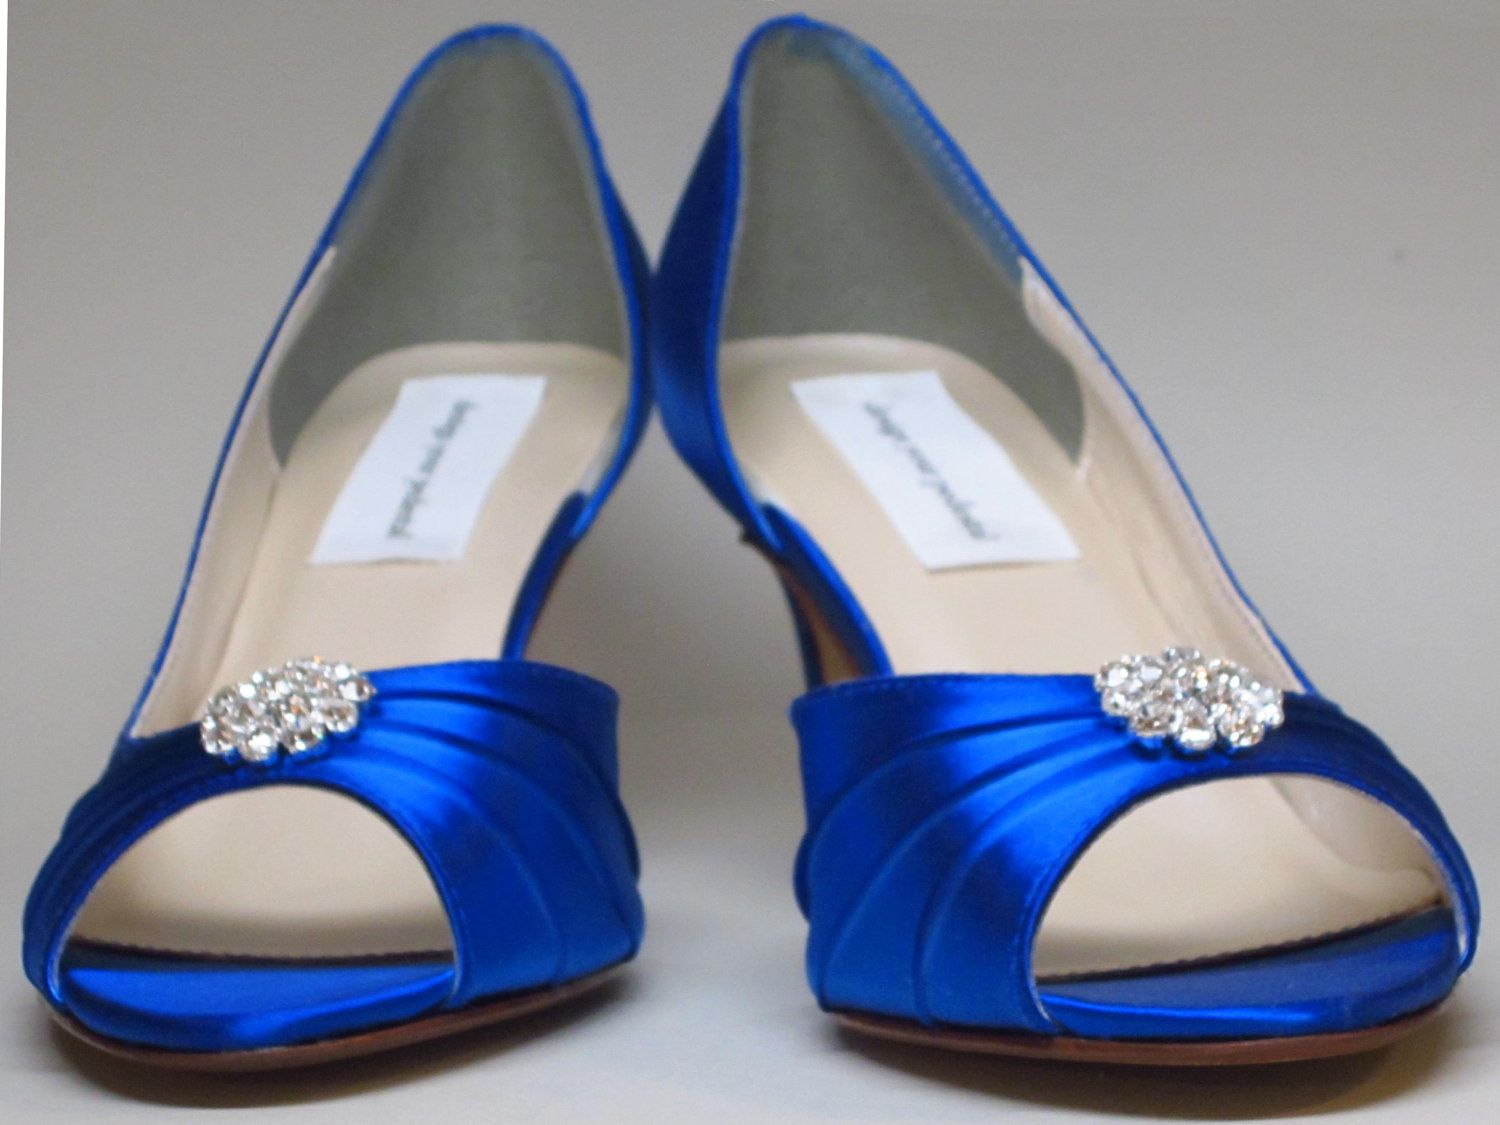 1000  images about wedding shoes on Pinterest | Blue wedding shoes ...